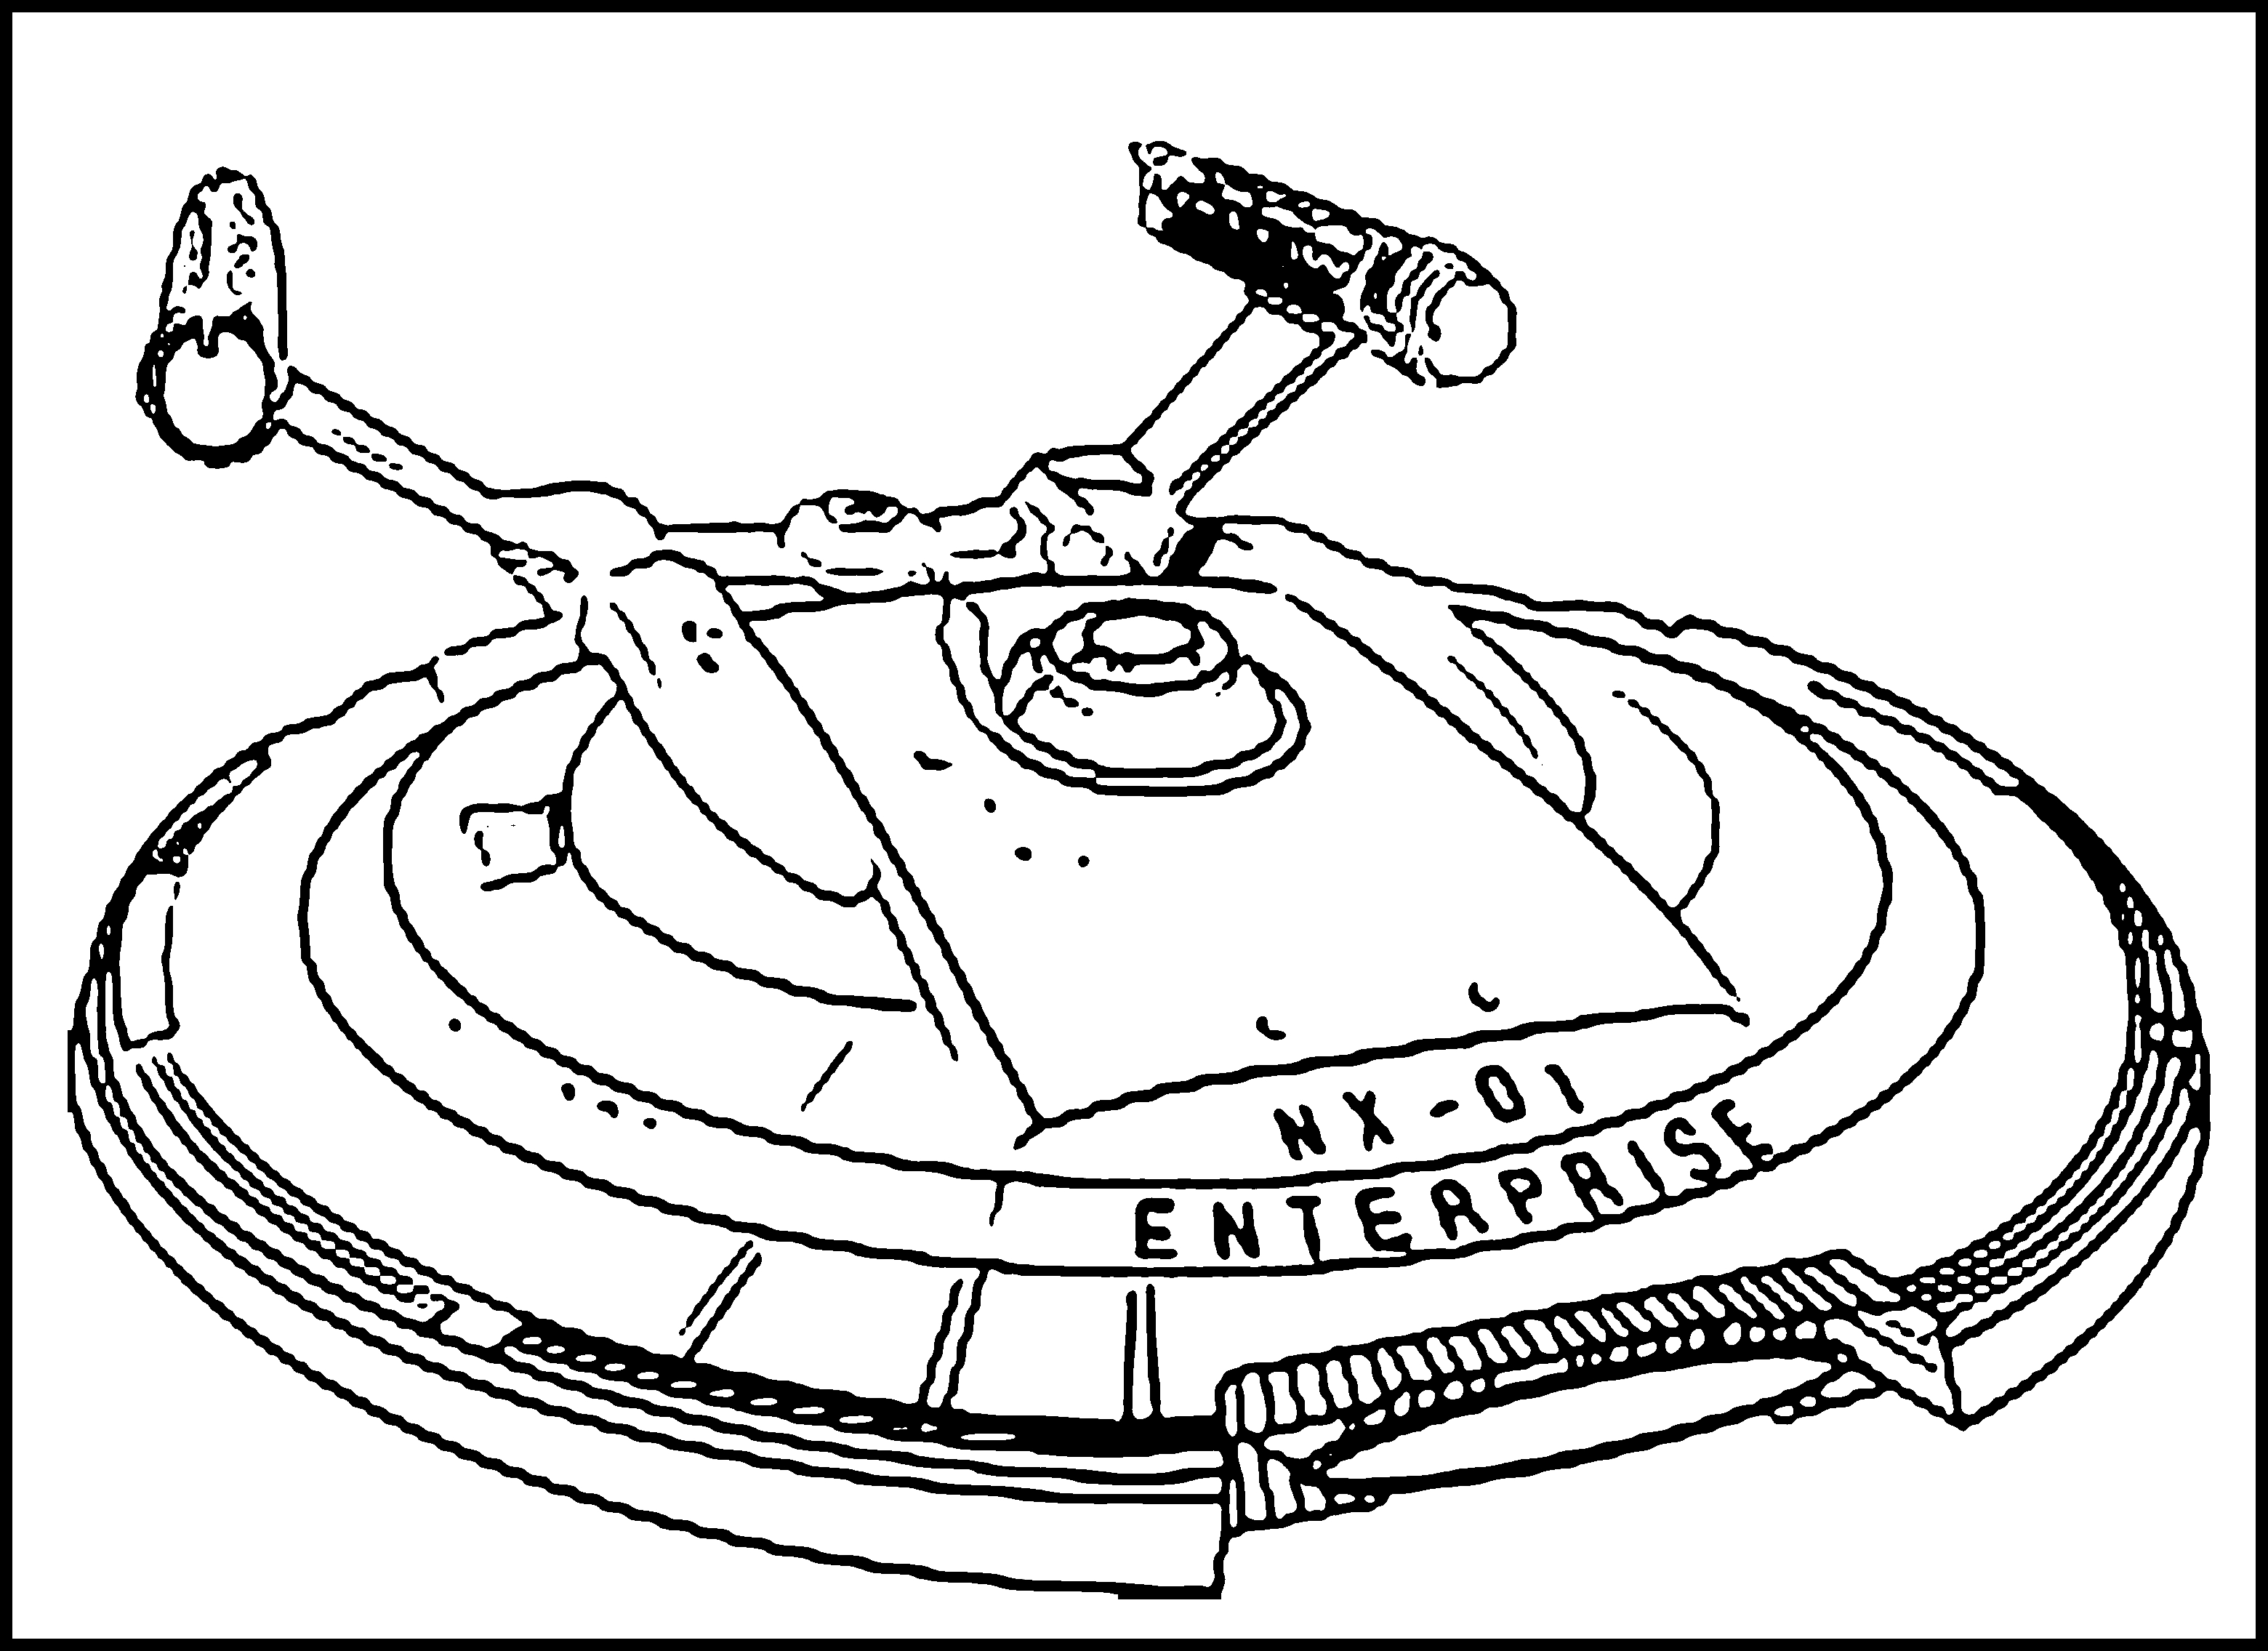 Spaceship Coloring Pages - Free Printable Spaceship Coloring Pages for Kids